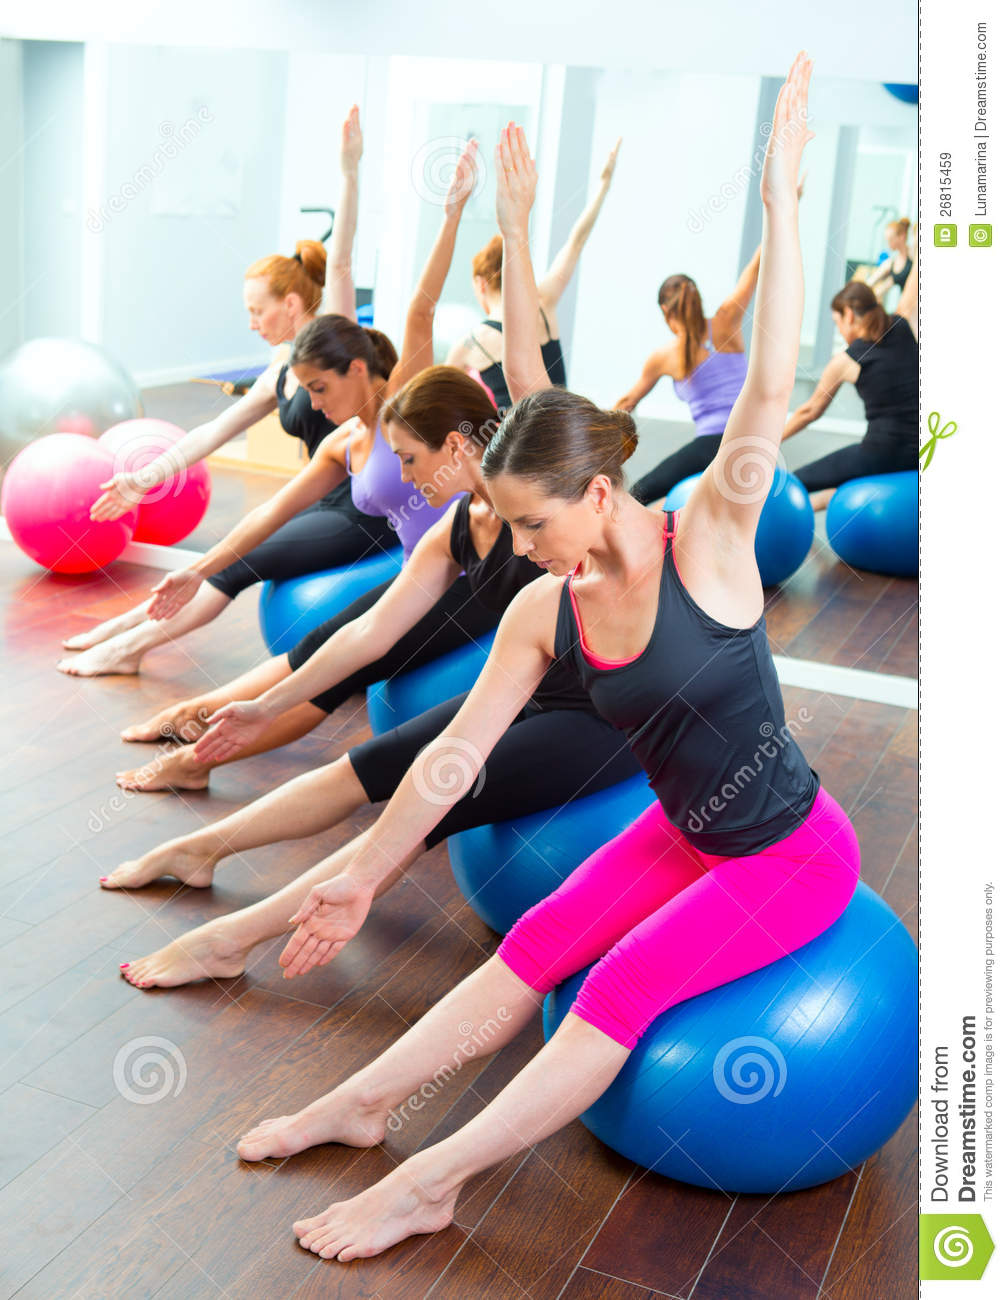 aerobic pilates women group with stability ball stock image image